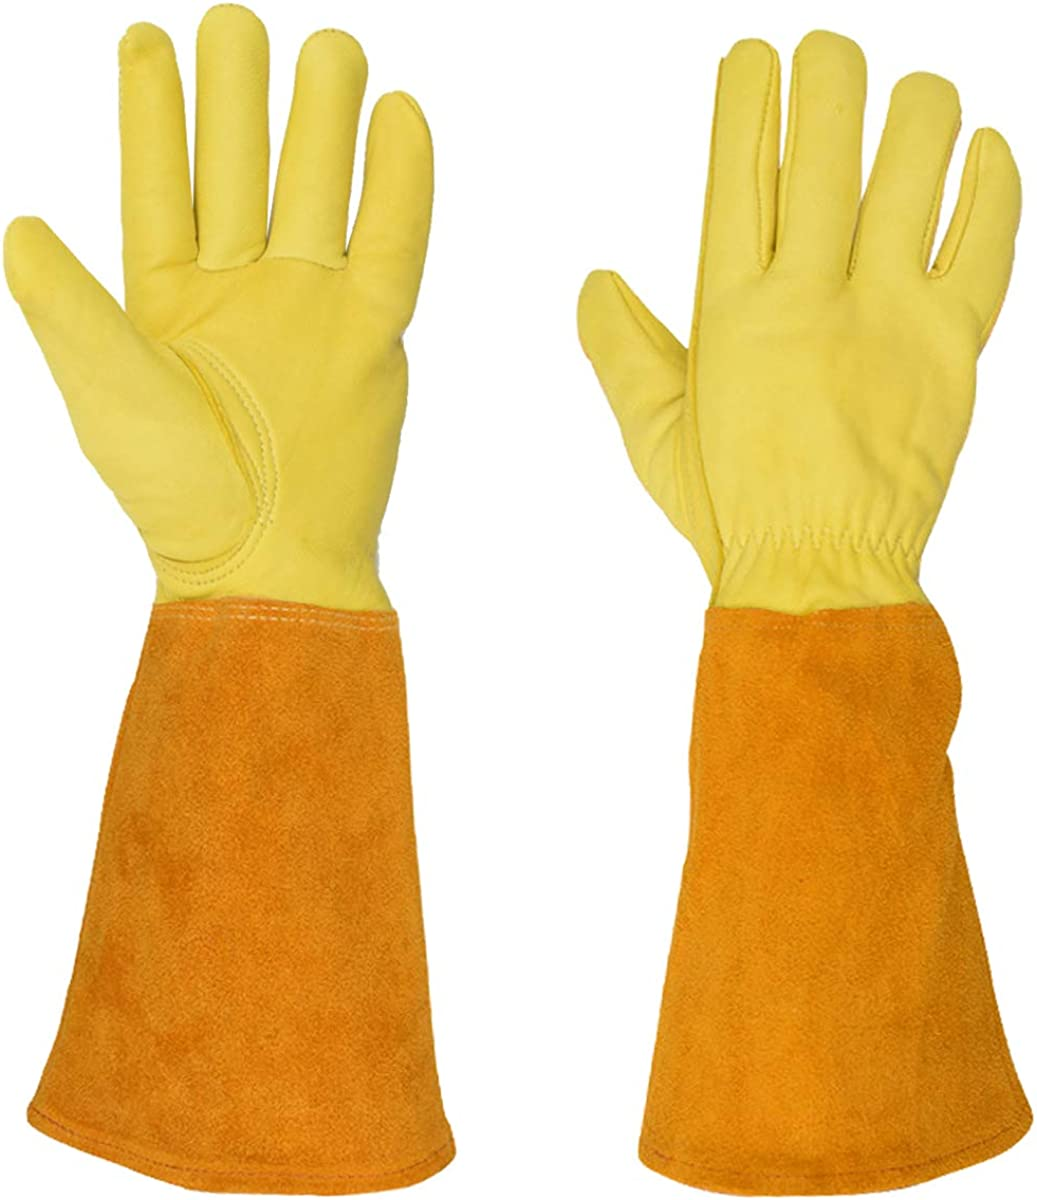 Gardening Gloves for Women/Men, Long Sleeve Leather Garden Gloves Puncture Proof for Pruning Cactus Rose Weeding